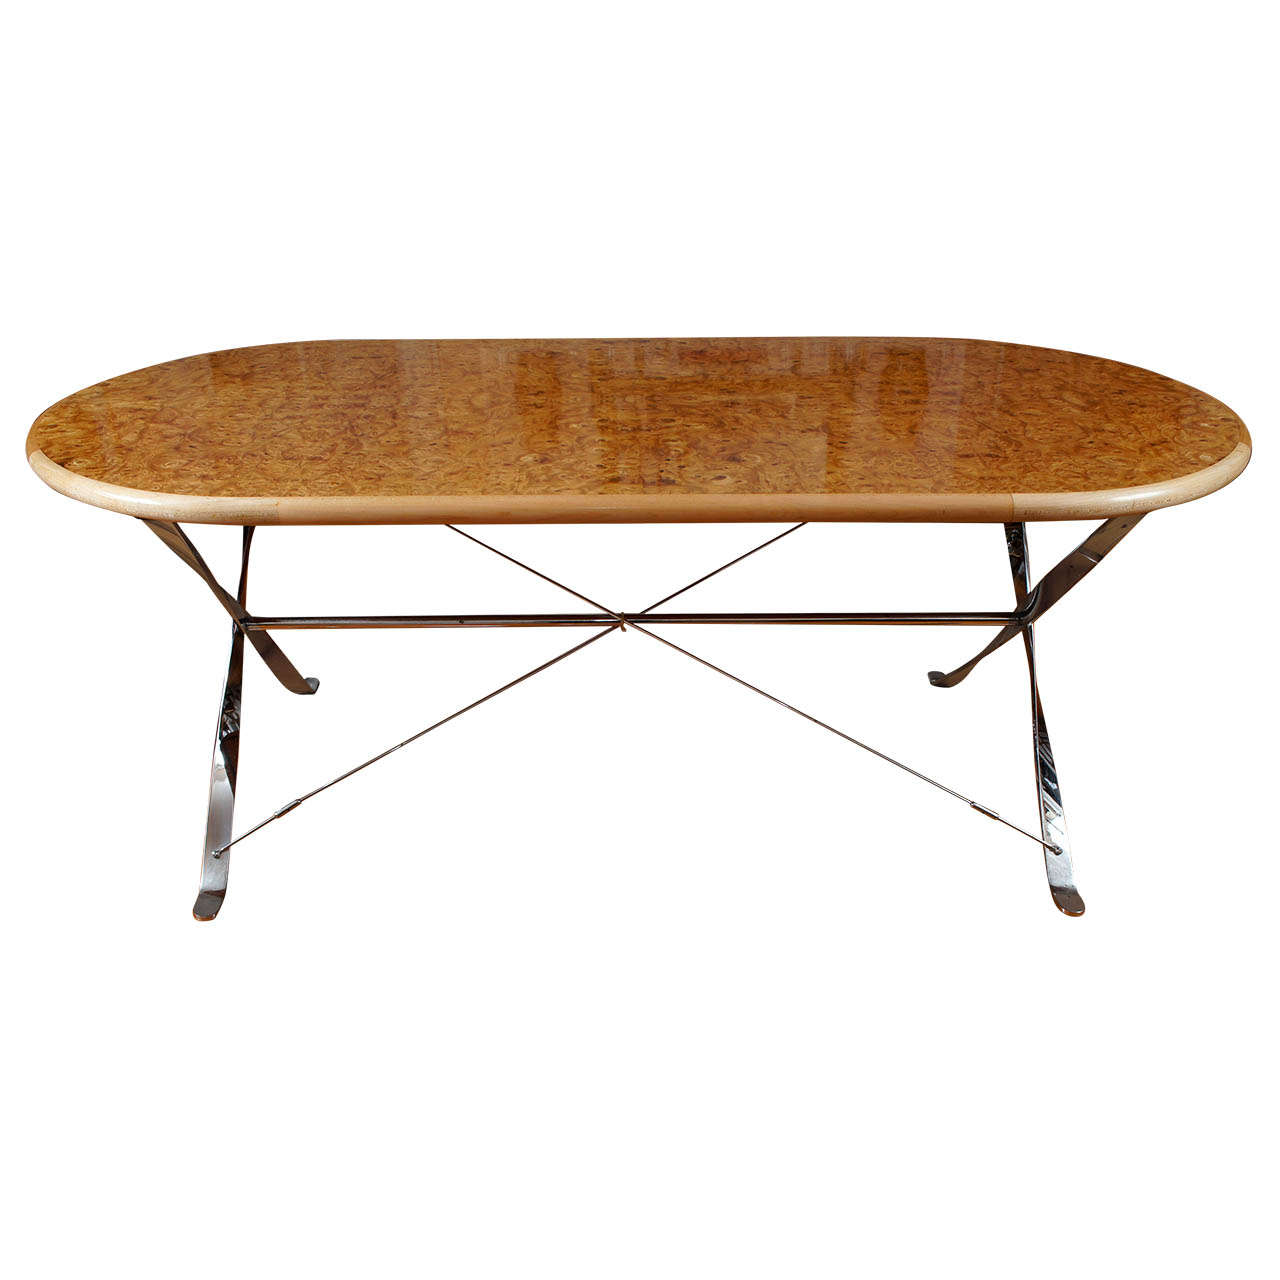 oval burl maple dining table on stainless steel base at. Black Bedroom Furniture Sets. Home Design Ideas